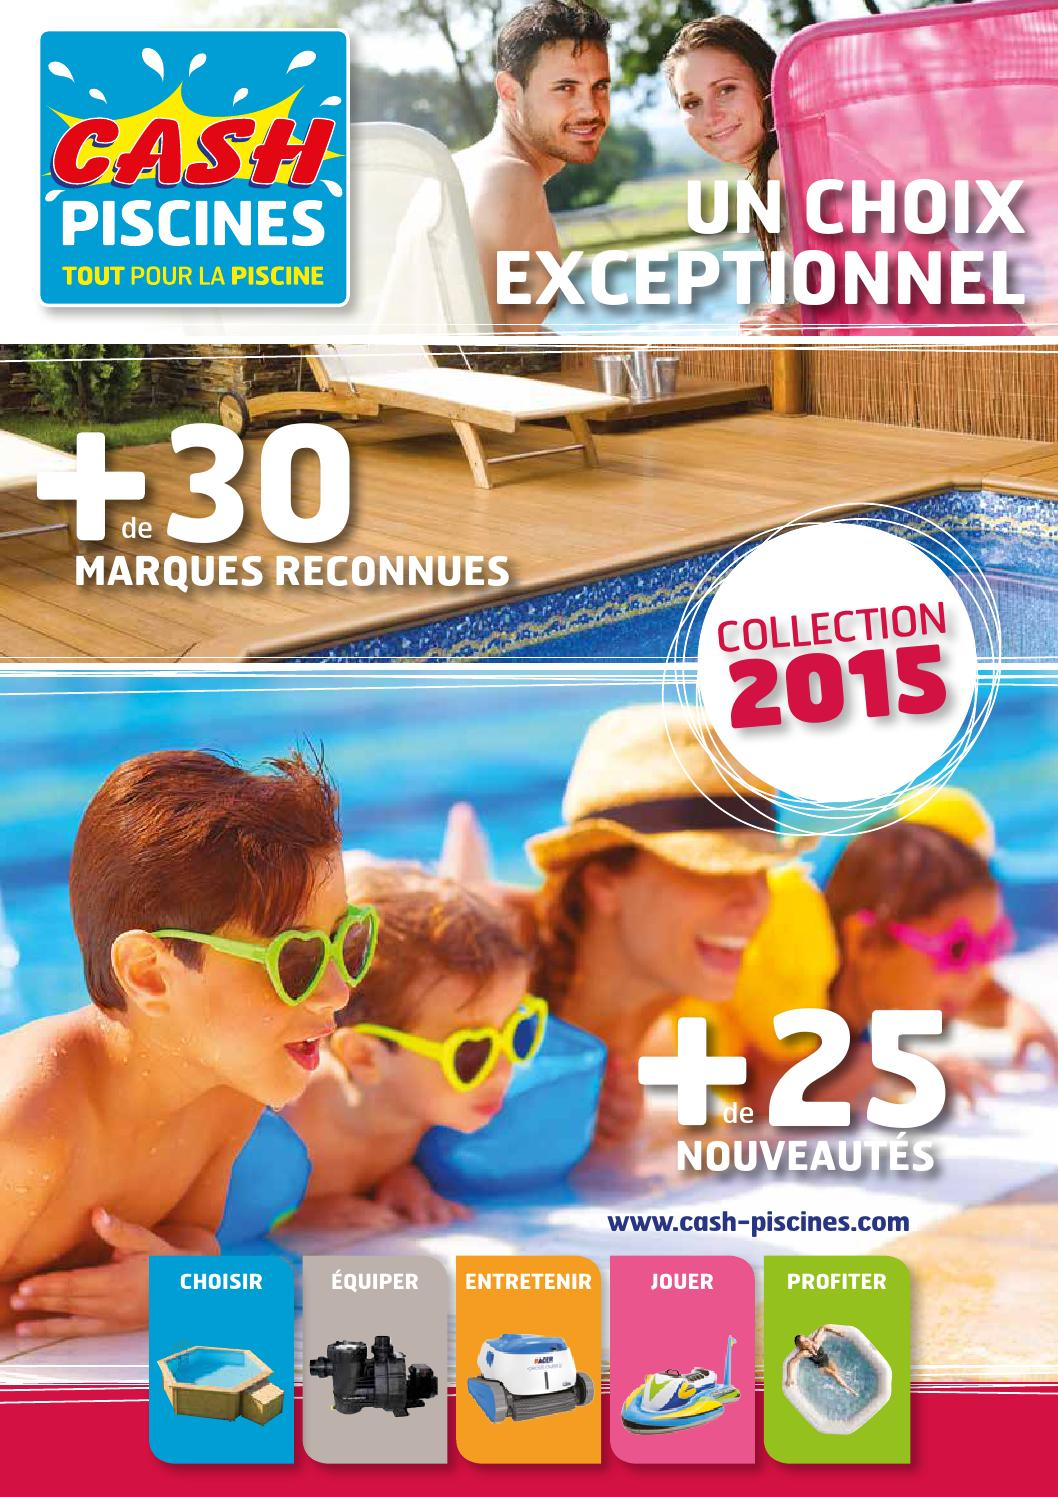 Fauteuil flottant pour piscine cash piscine meuble de for Cash piscine catalogue 2017